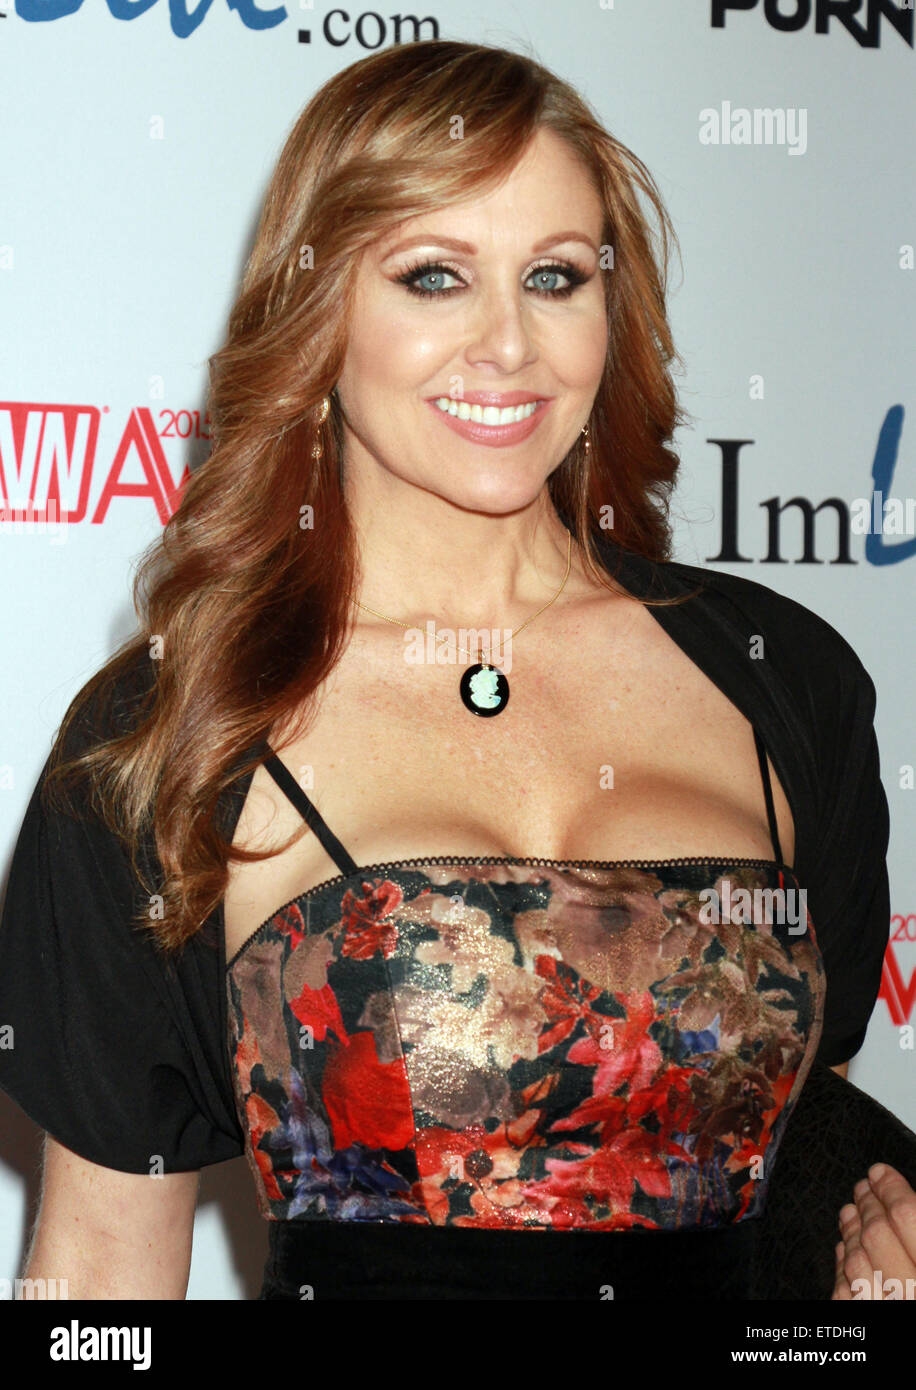 Julia ann latest photos